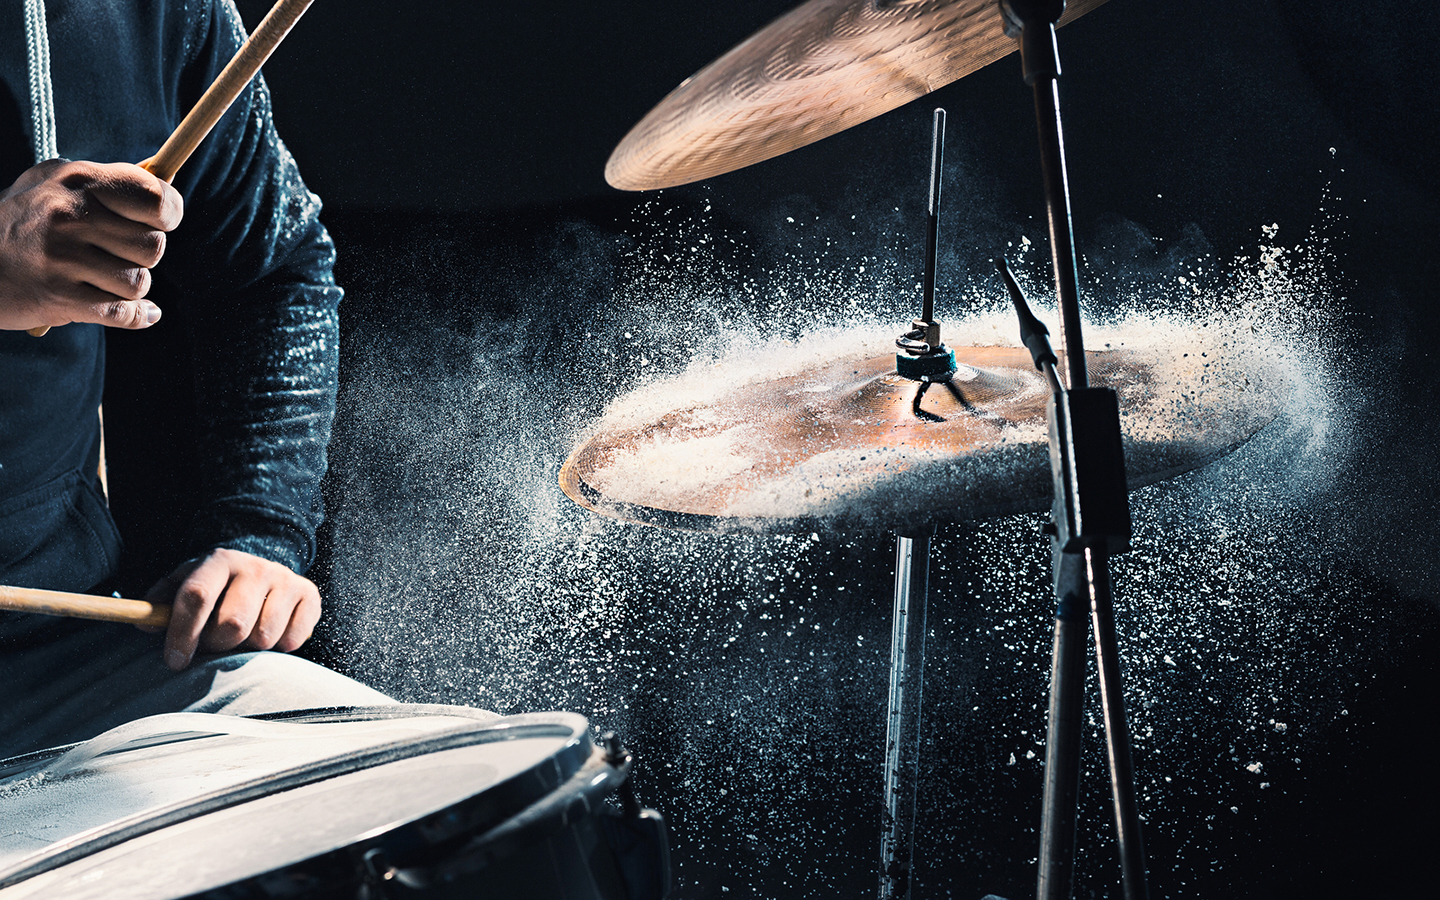 Man playing cymbal covered in flower, which sprays everywhere when he hits the cymbal